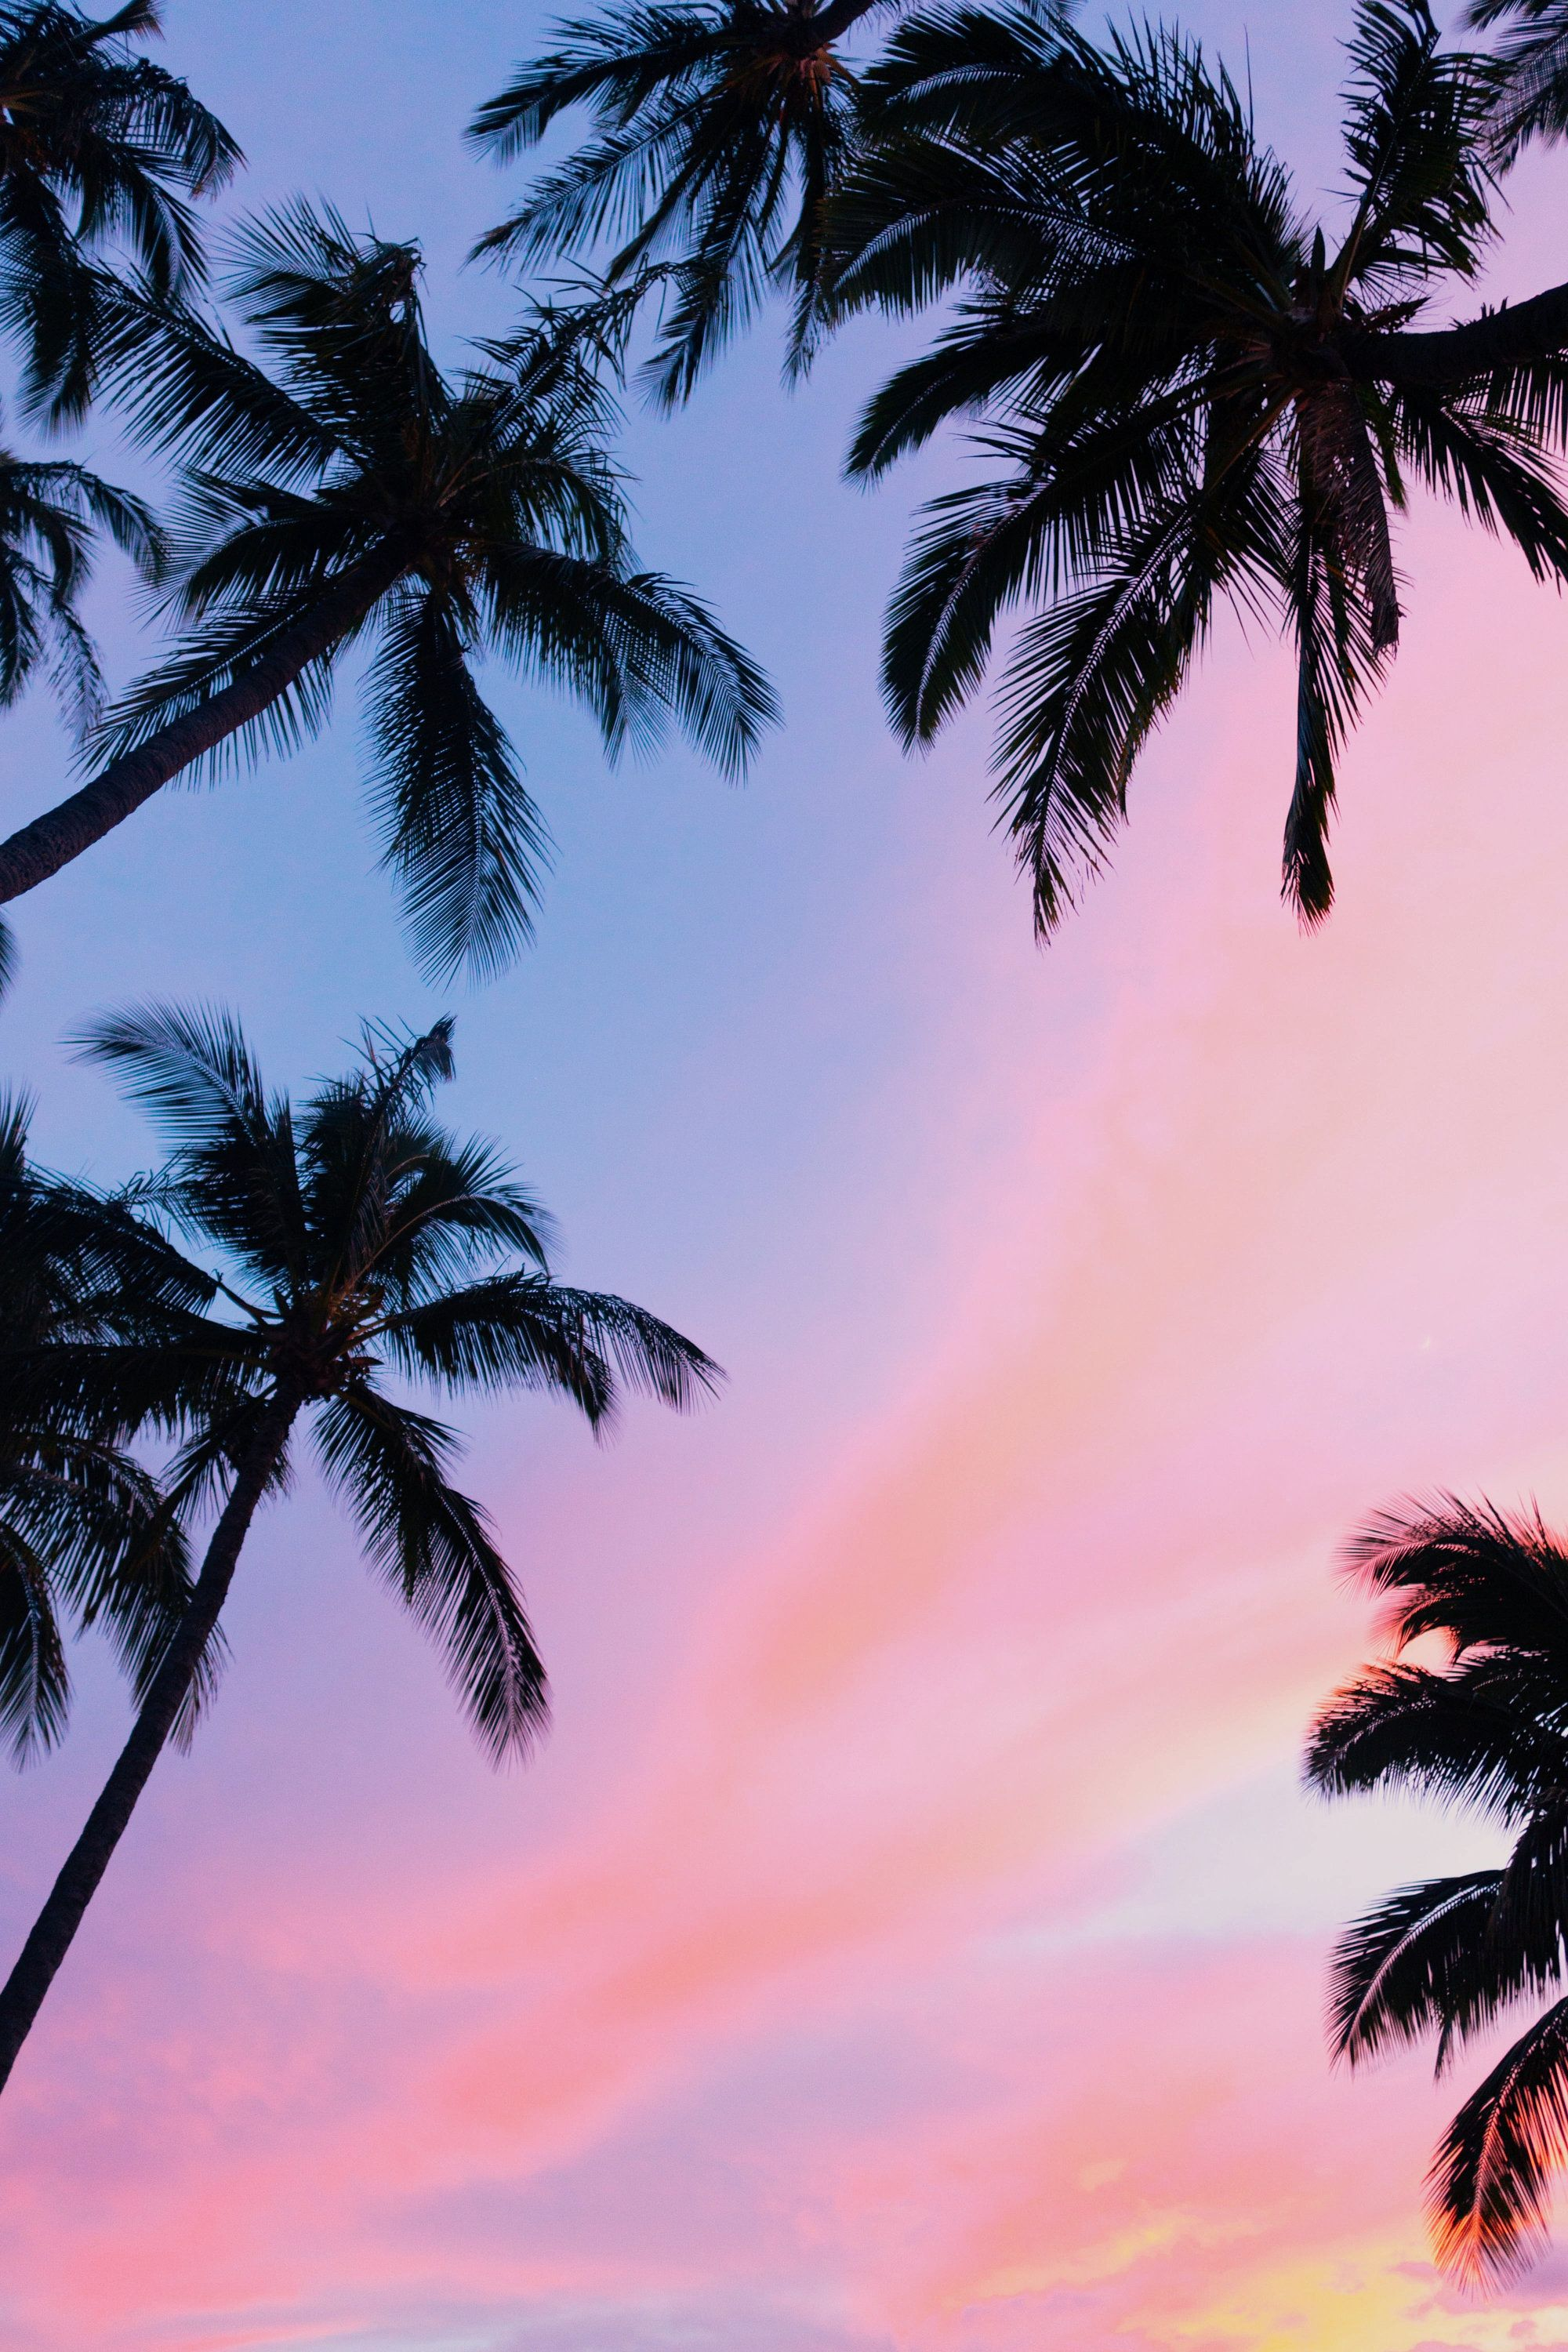 Beach Photography Sunset Palm Trees Digital Download Etsy Wallpaper Iphone Pastell Hintergrundbilder Iphone Iphone Hintergrund Sommer